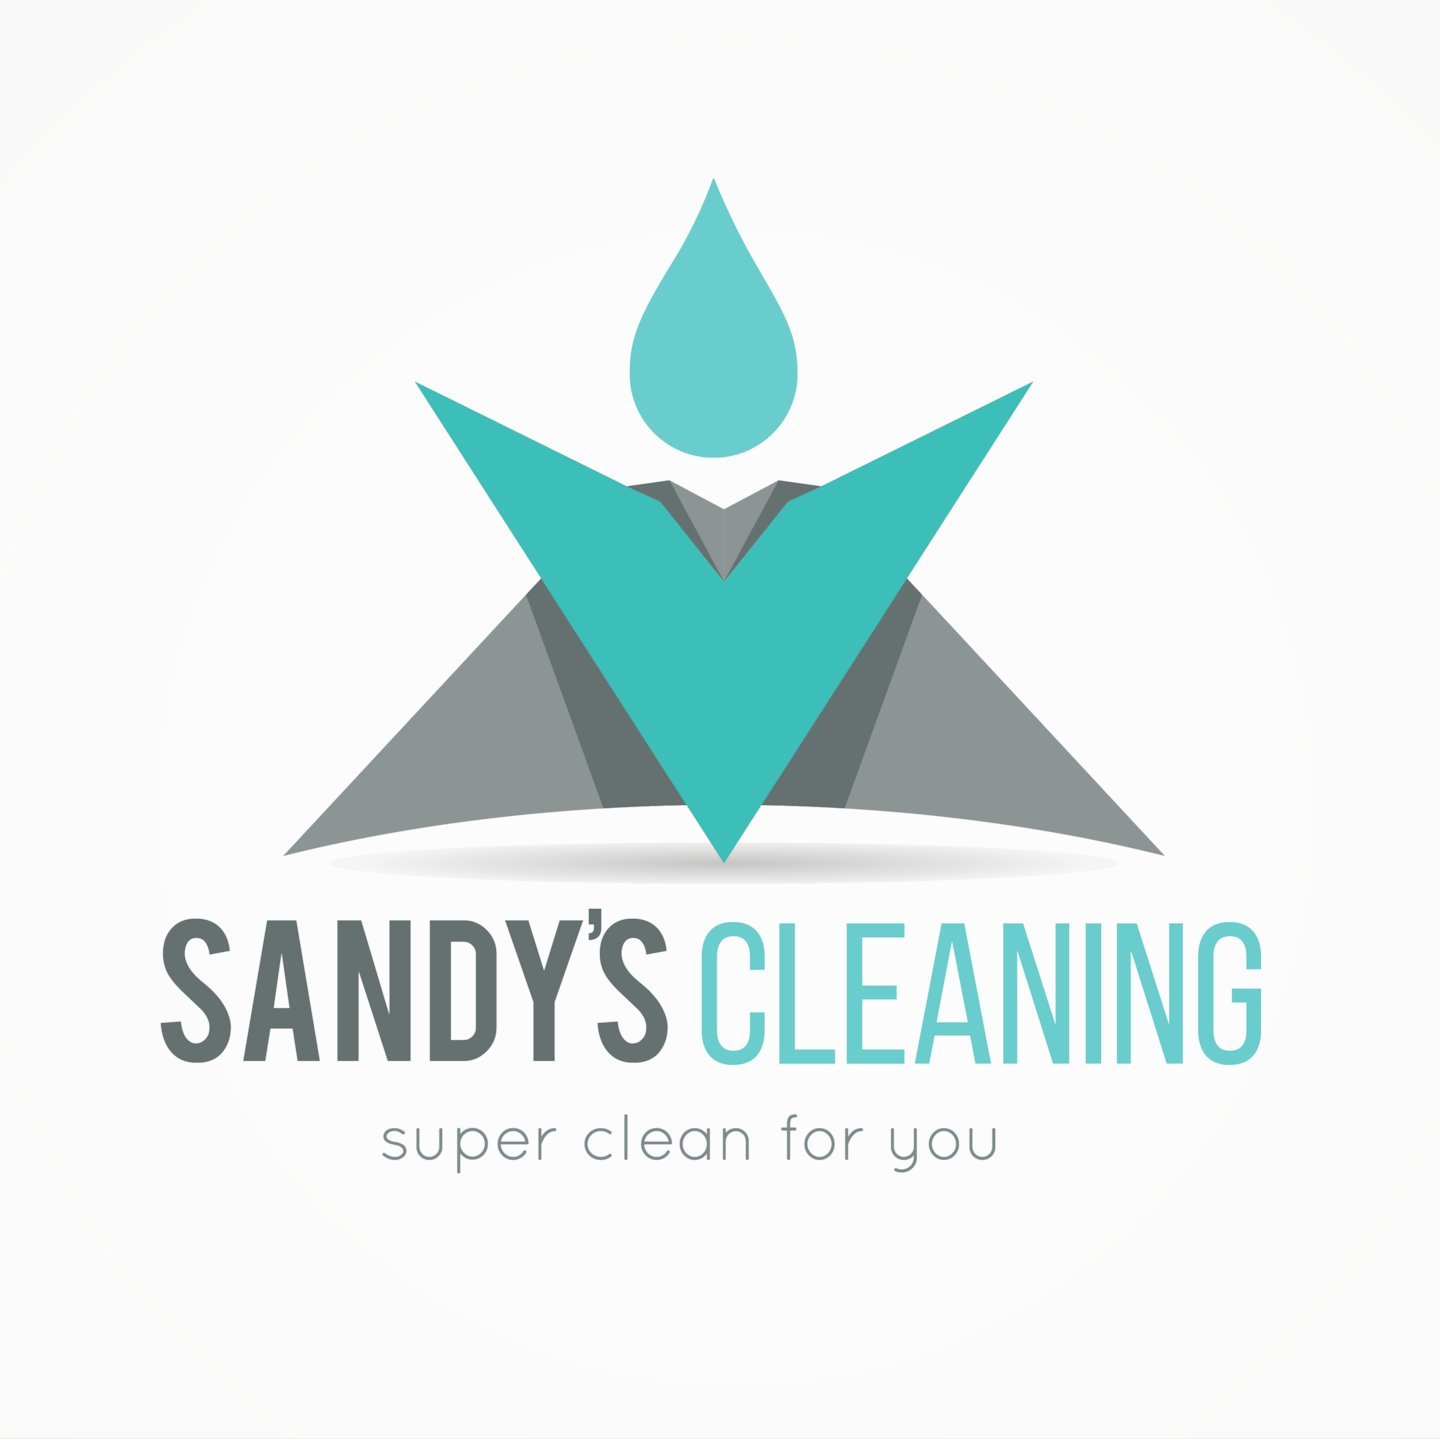 Sandy's Cleaning Service